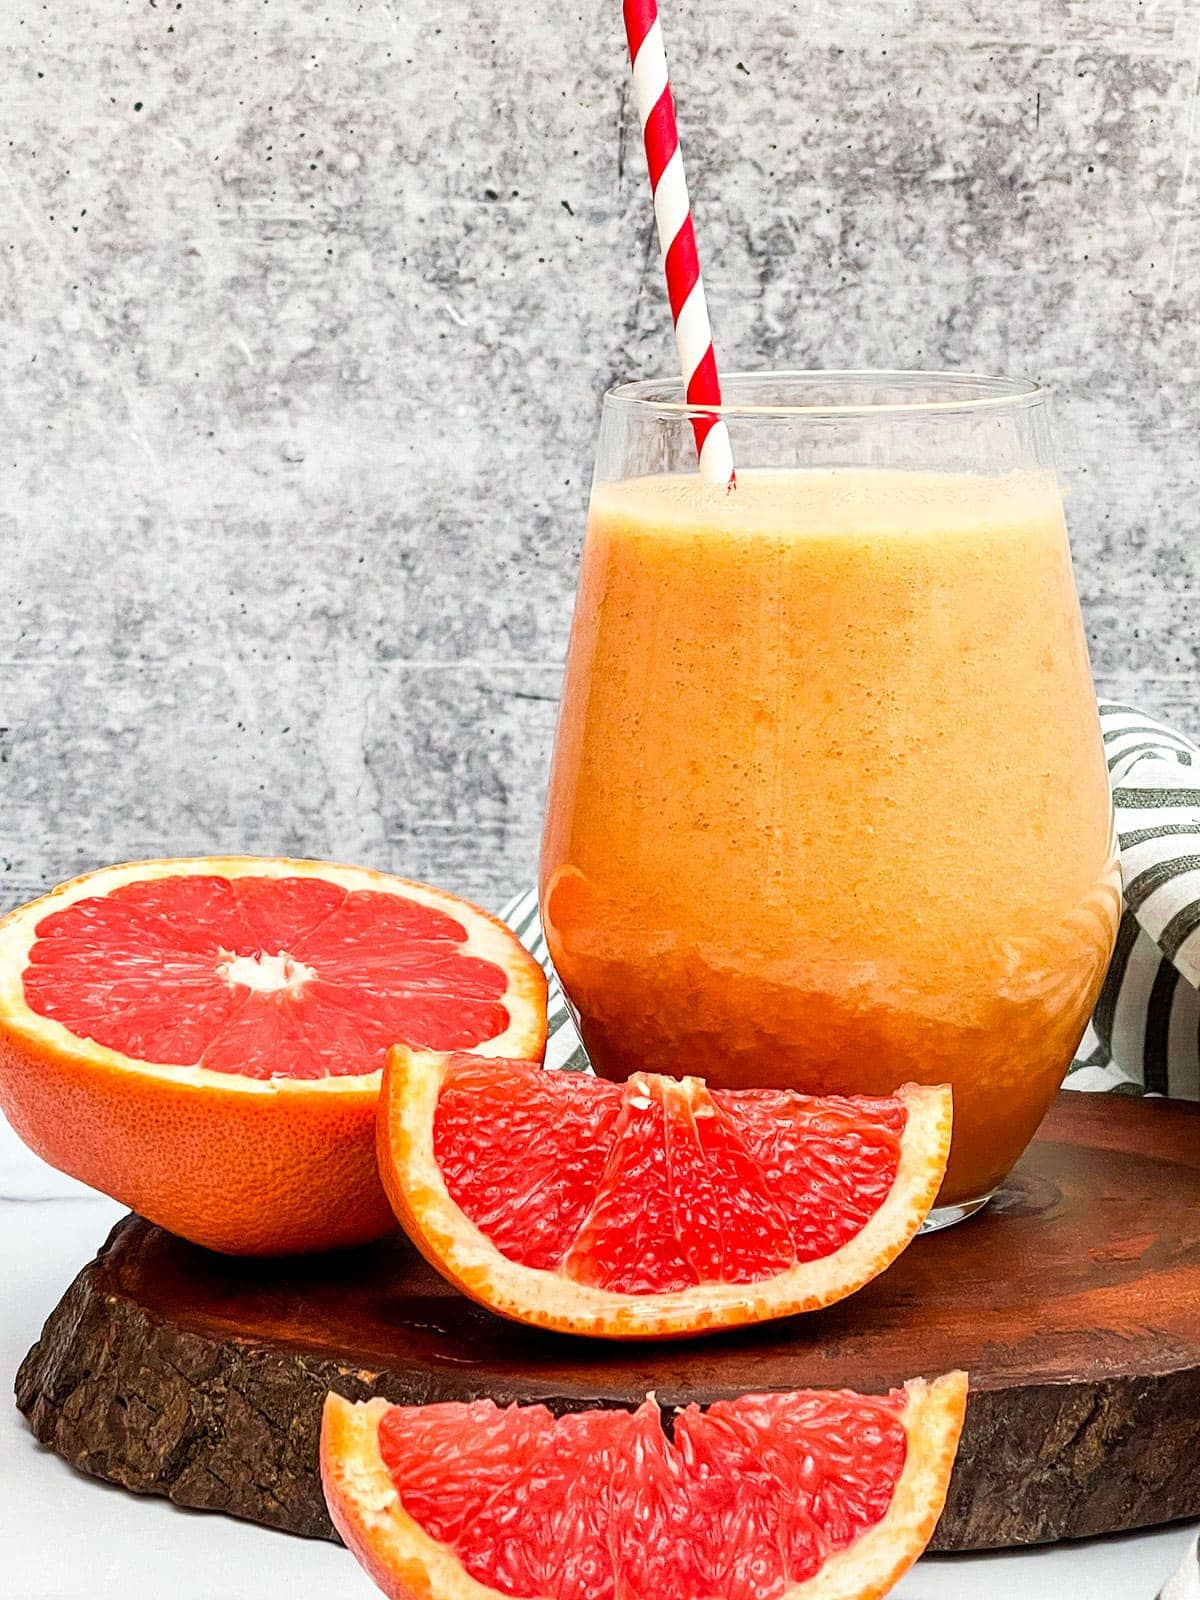 Grapefruit smoothie in a glass with a striped orange and white straw, cut pieces of grapefruits on a wooden background